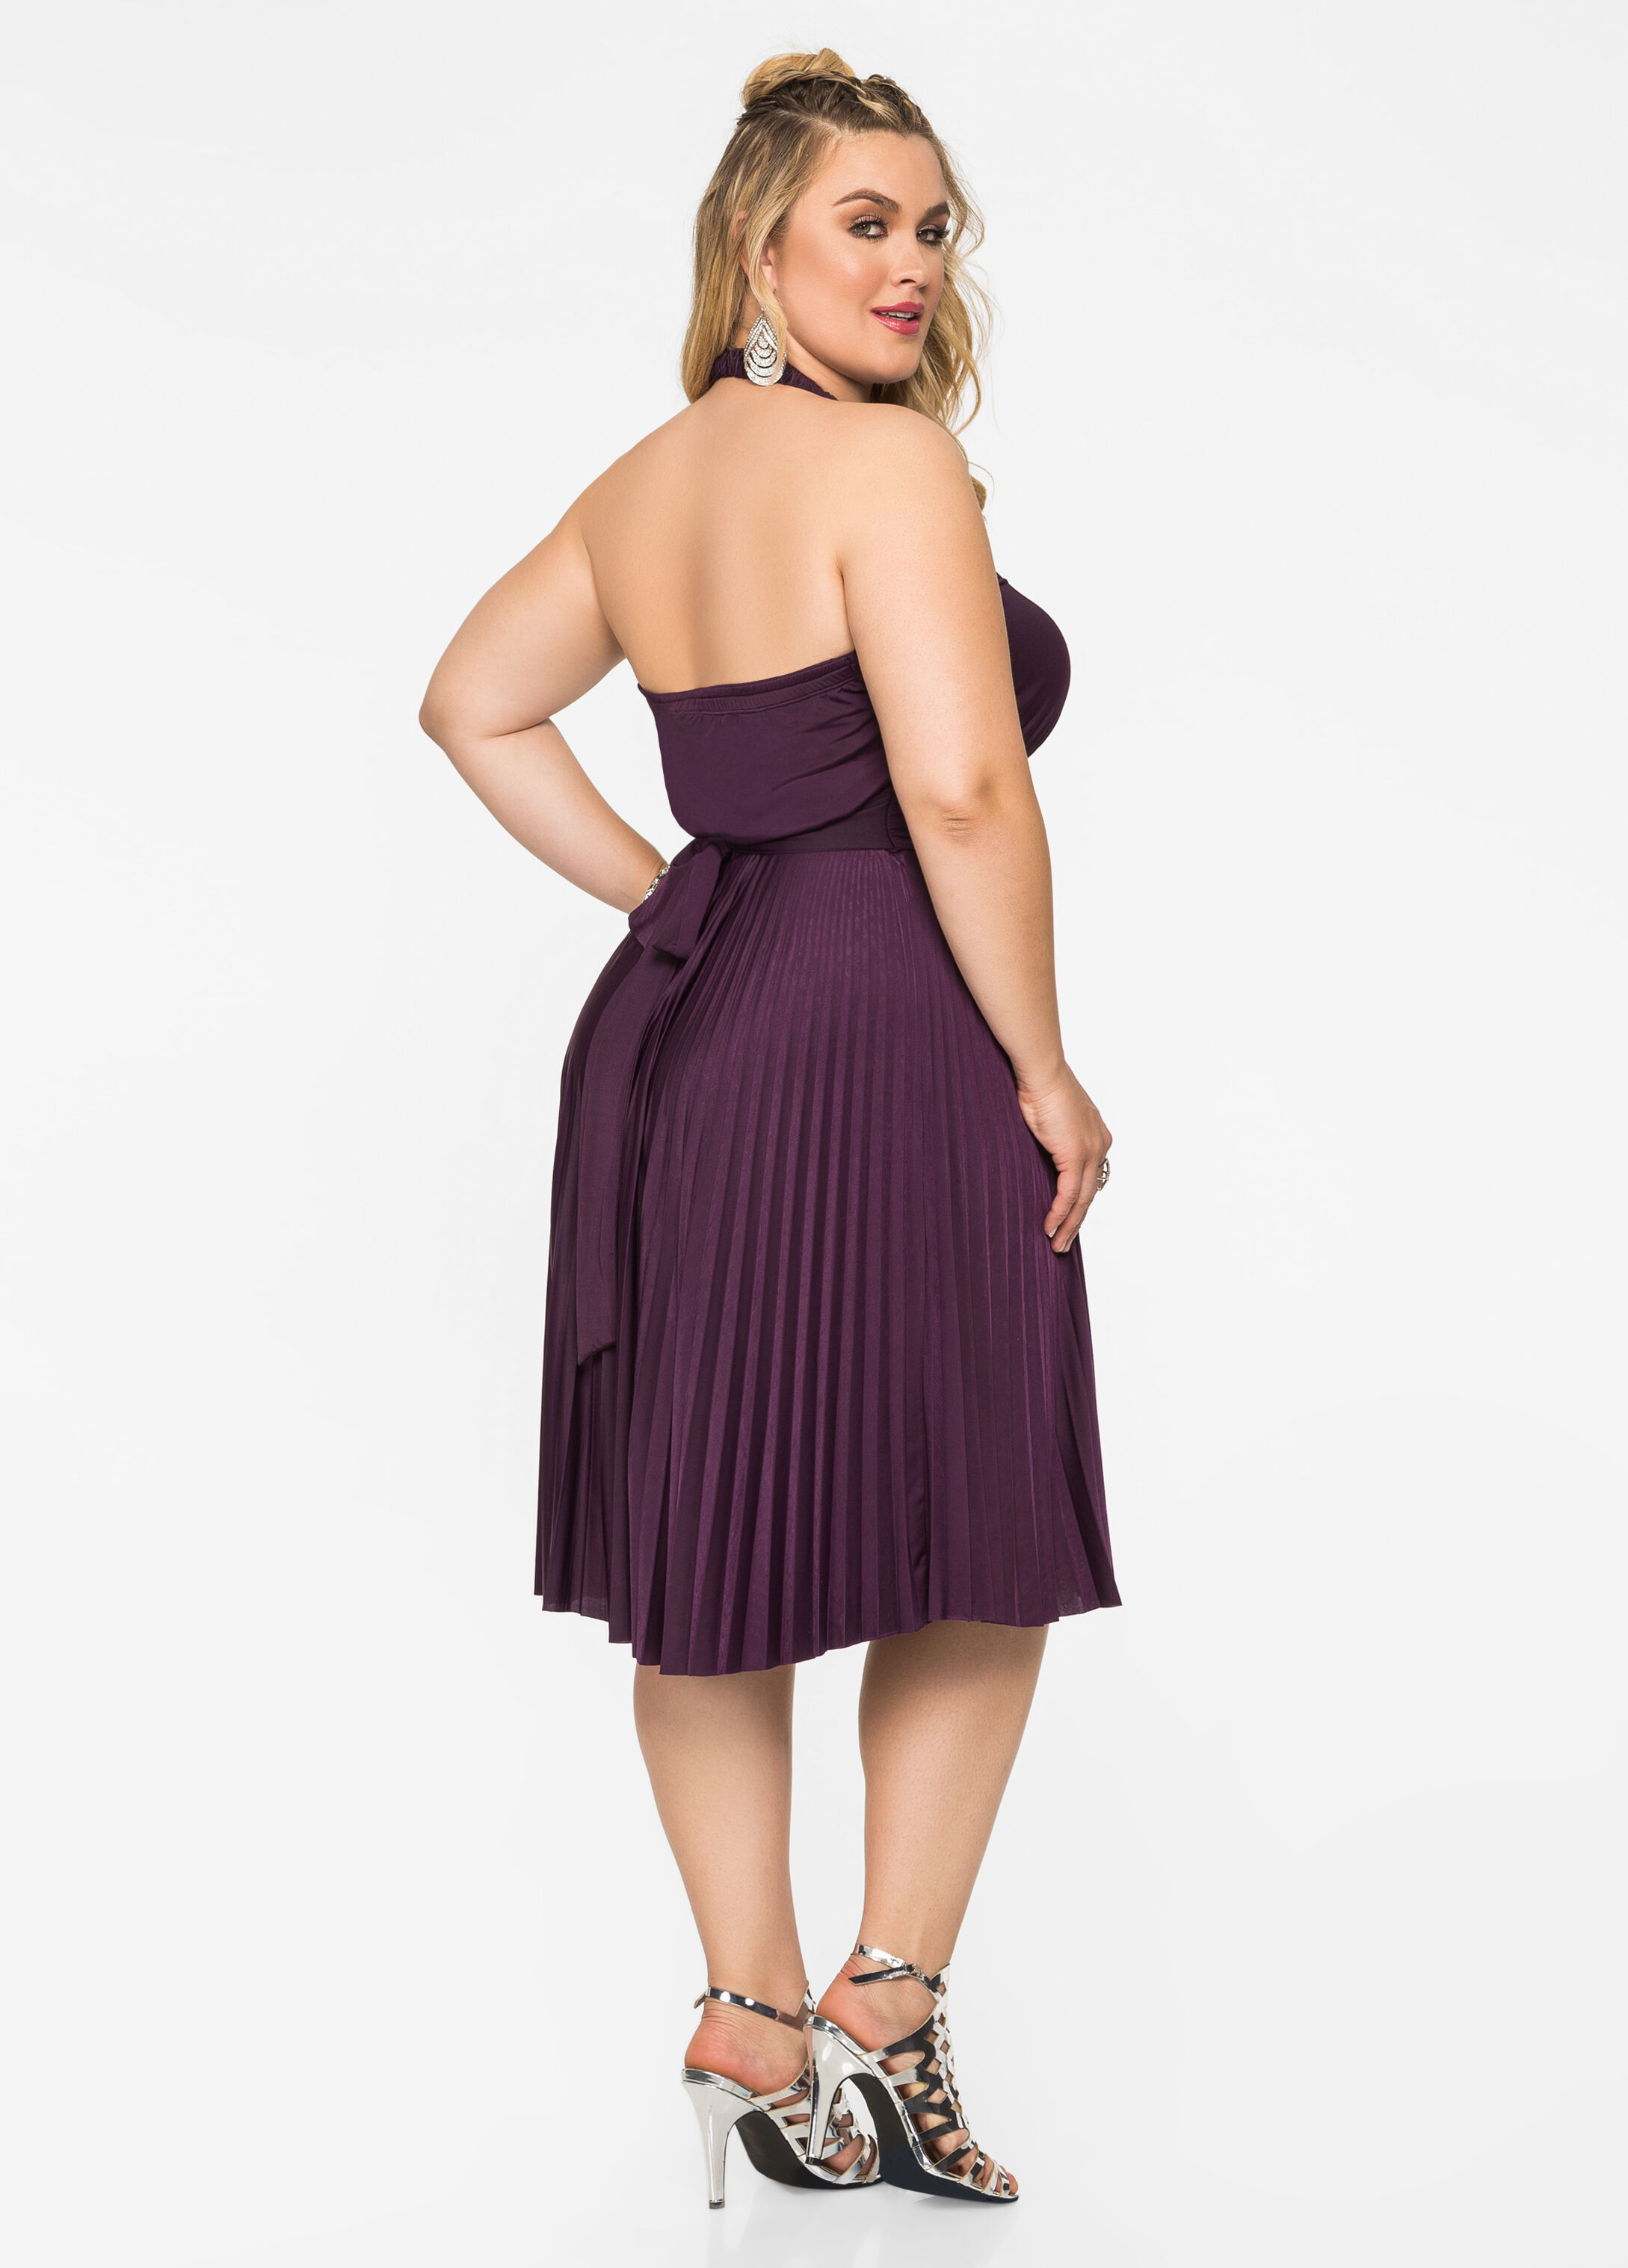 Find crop top and skirt from a vast selection of Elegant Dresses for Women. Get great deals on eBay!